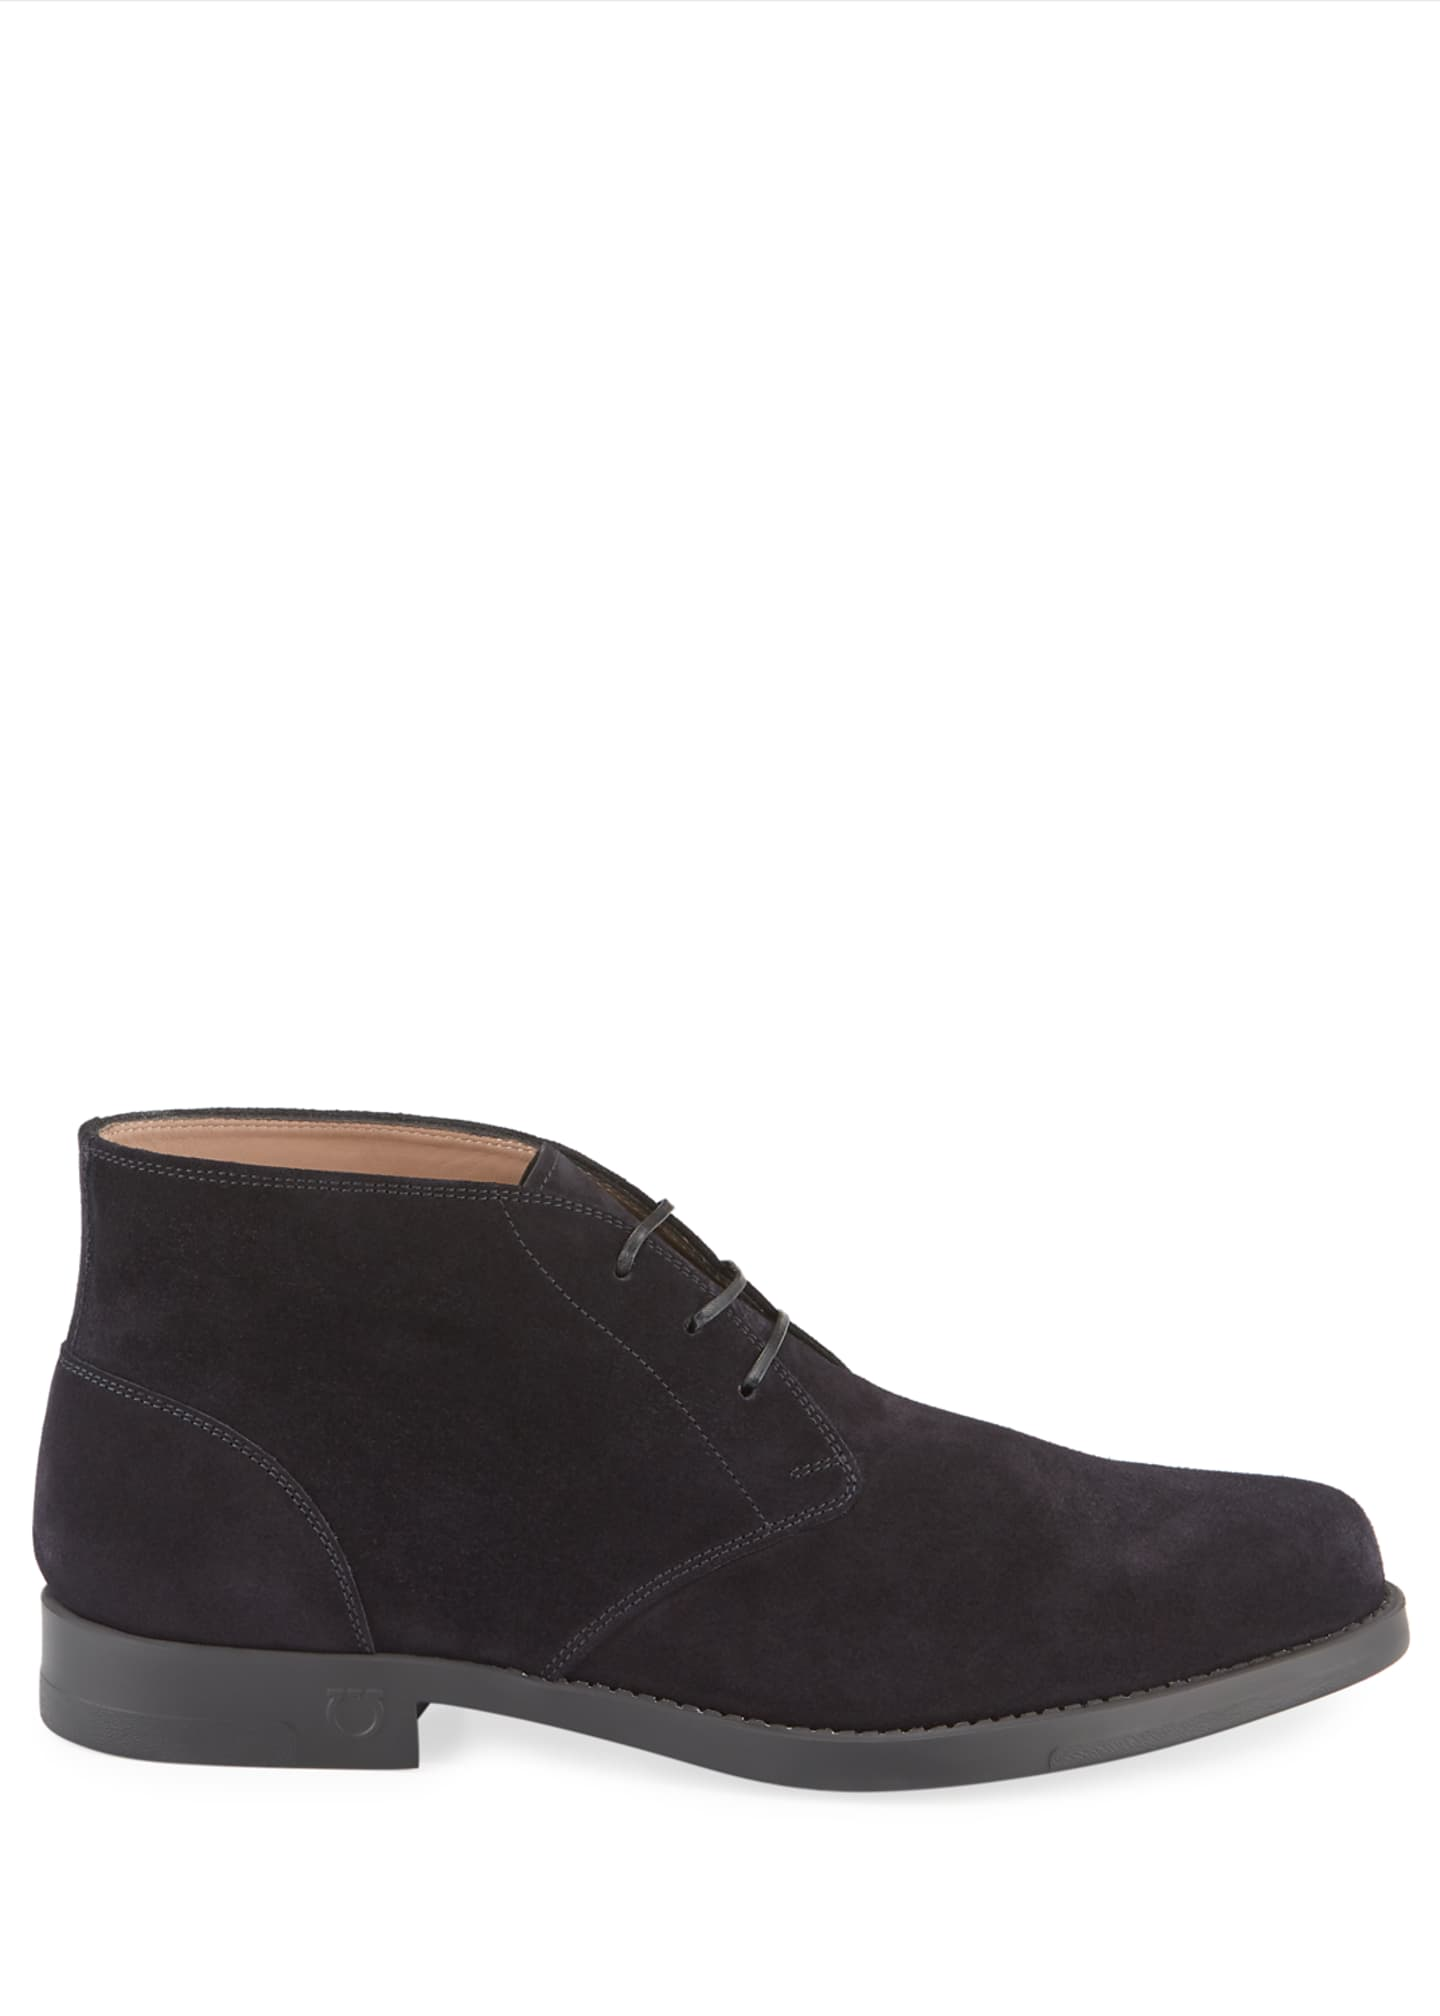 Image 3 of 3: Men's Sachie-2 Lightweight Suede Chukka Boots